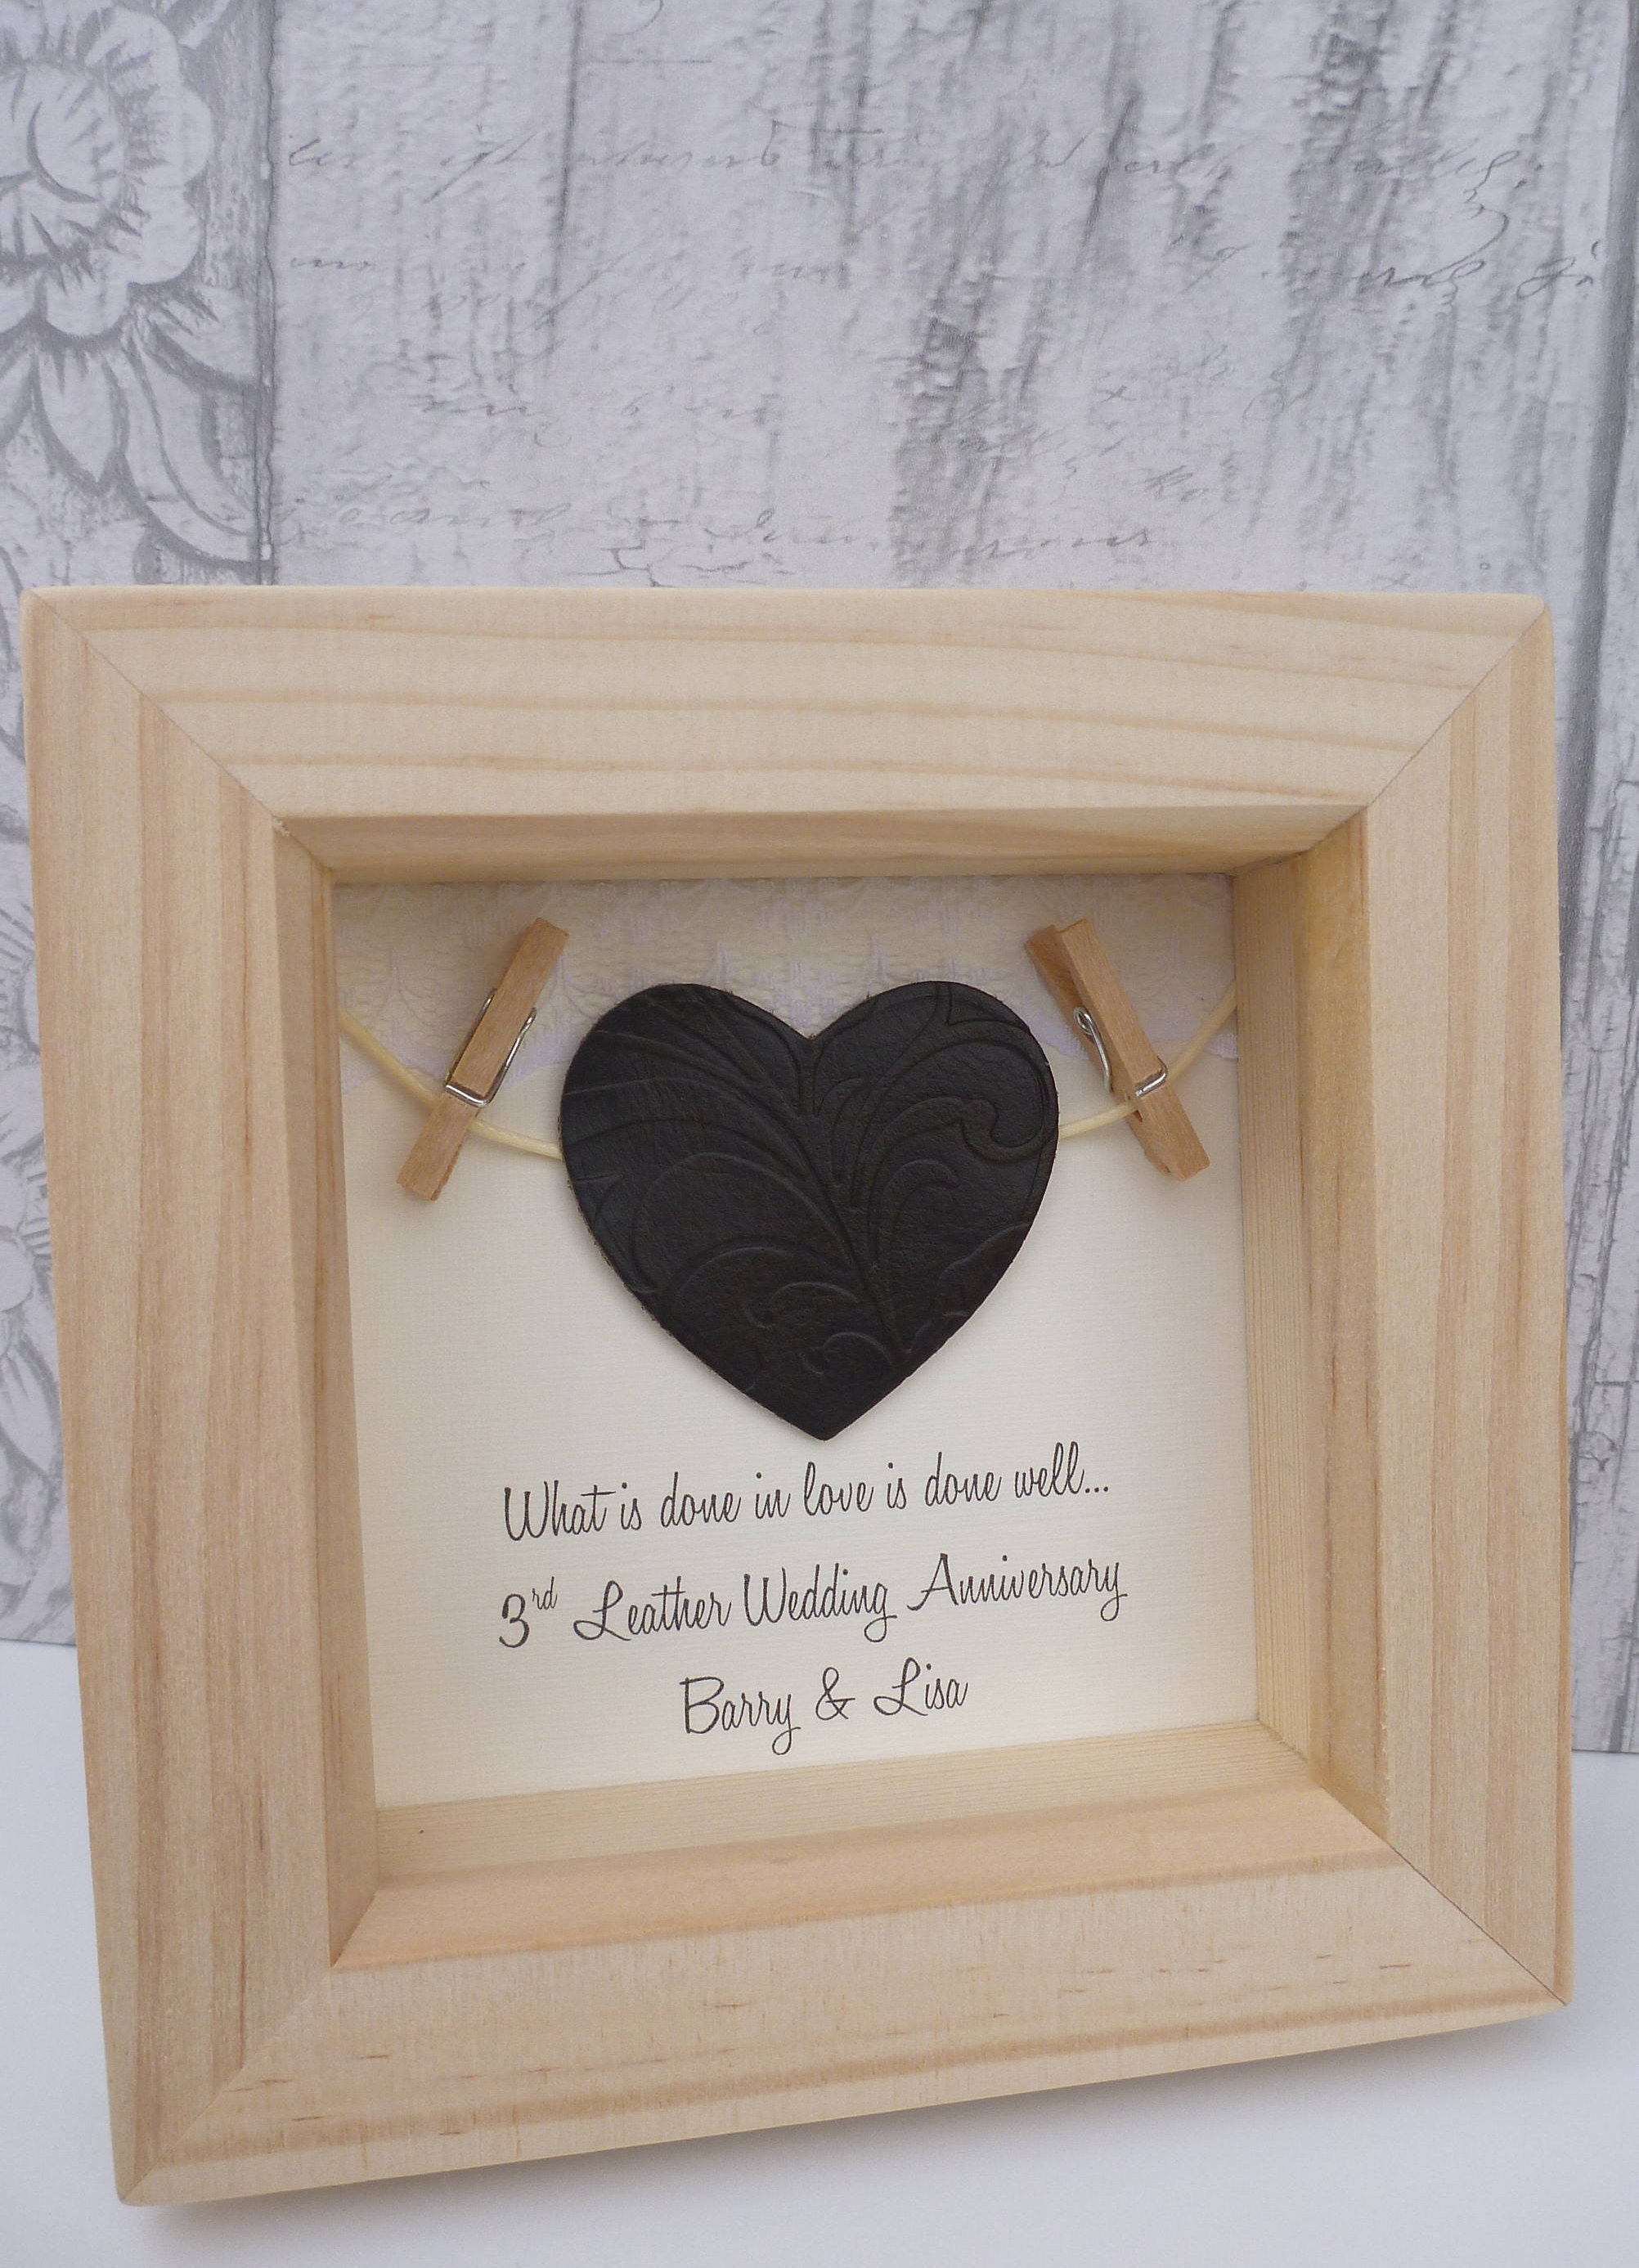 3rd Anniversary Gift Wedding Leather